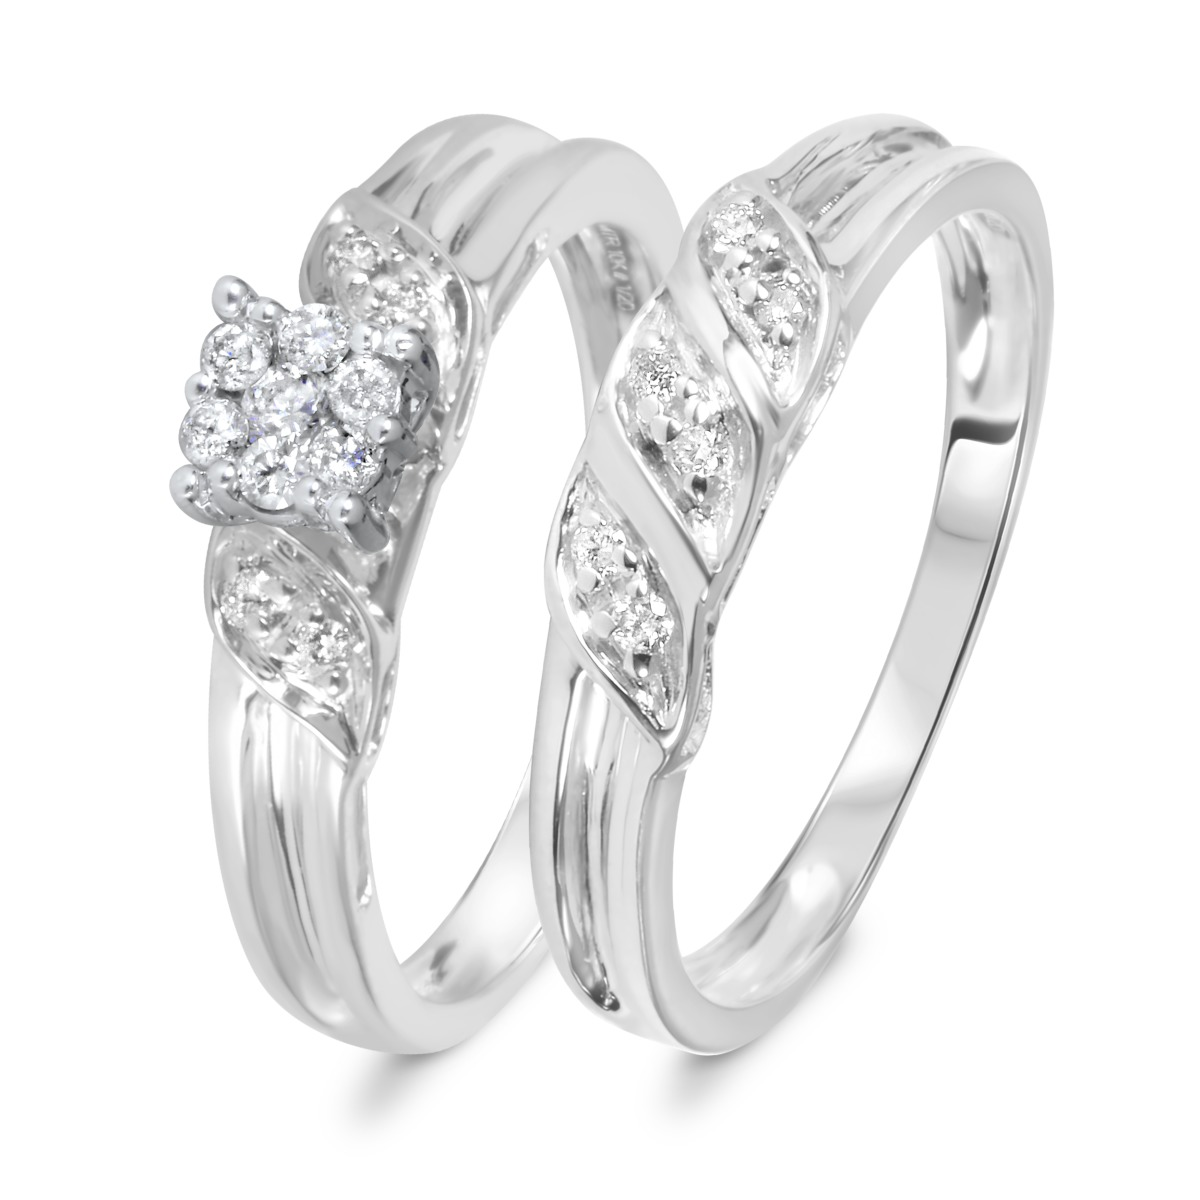 1/7 Carat Diamond Bridal Wedding Ring Set 14K White Gold